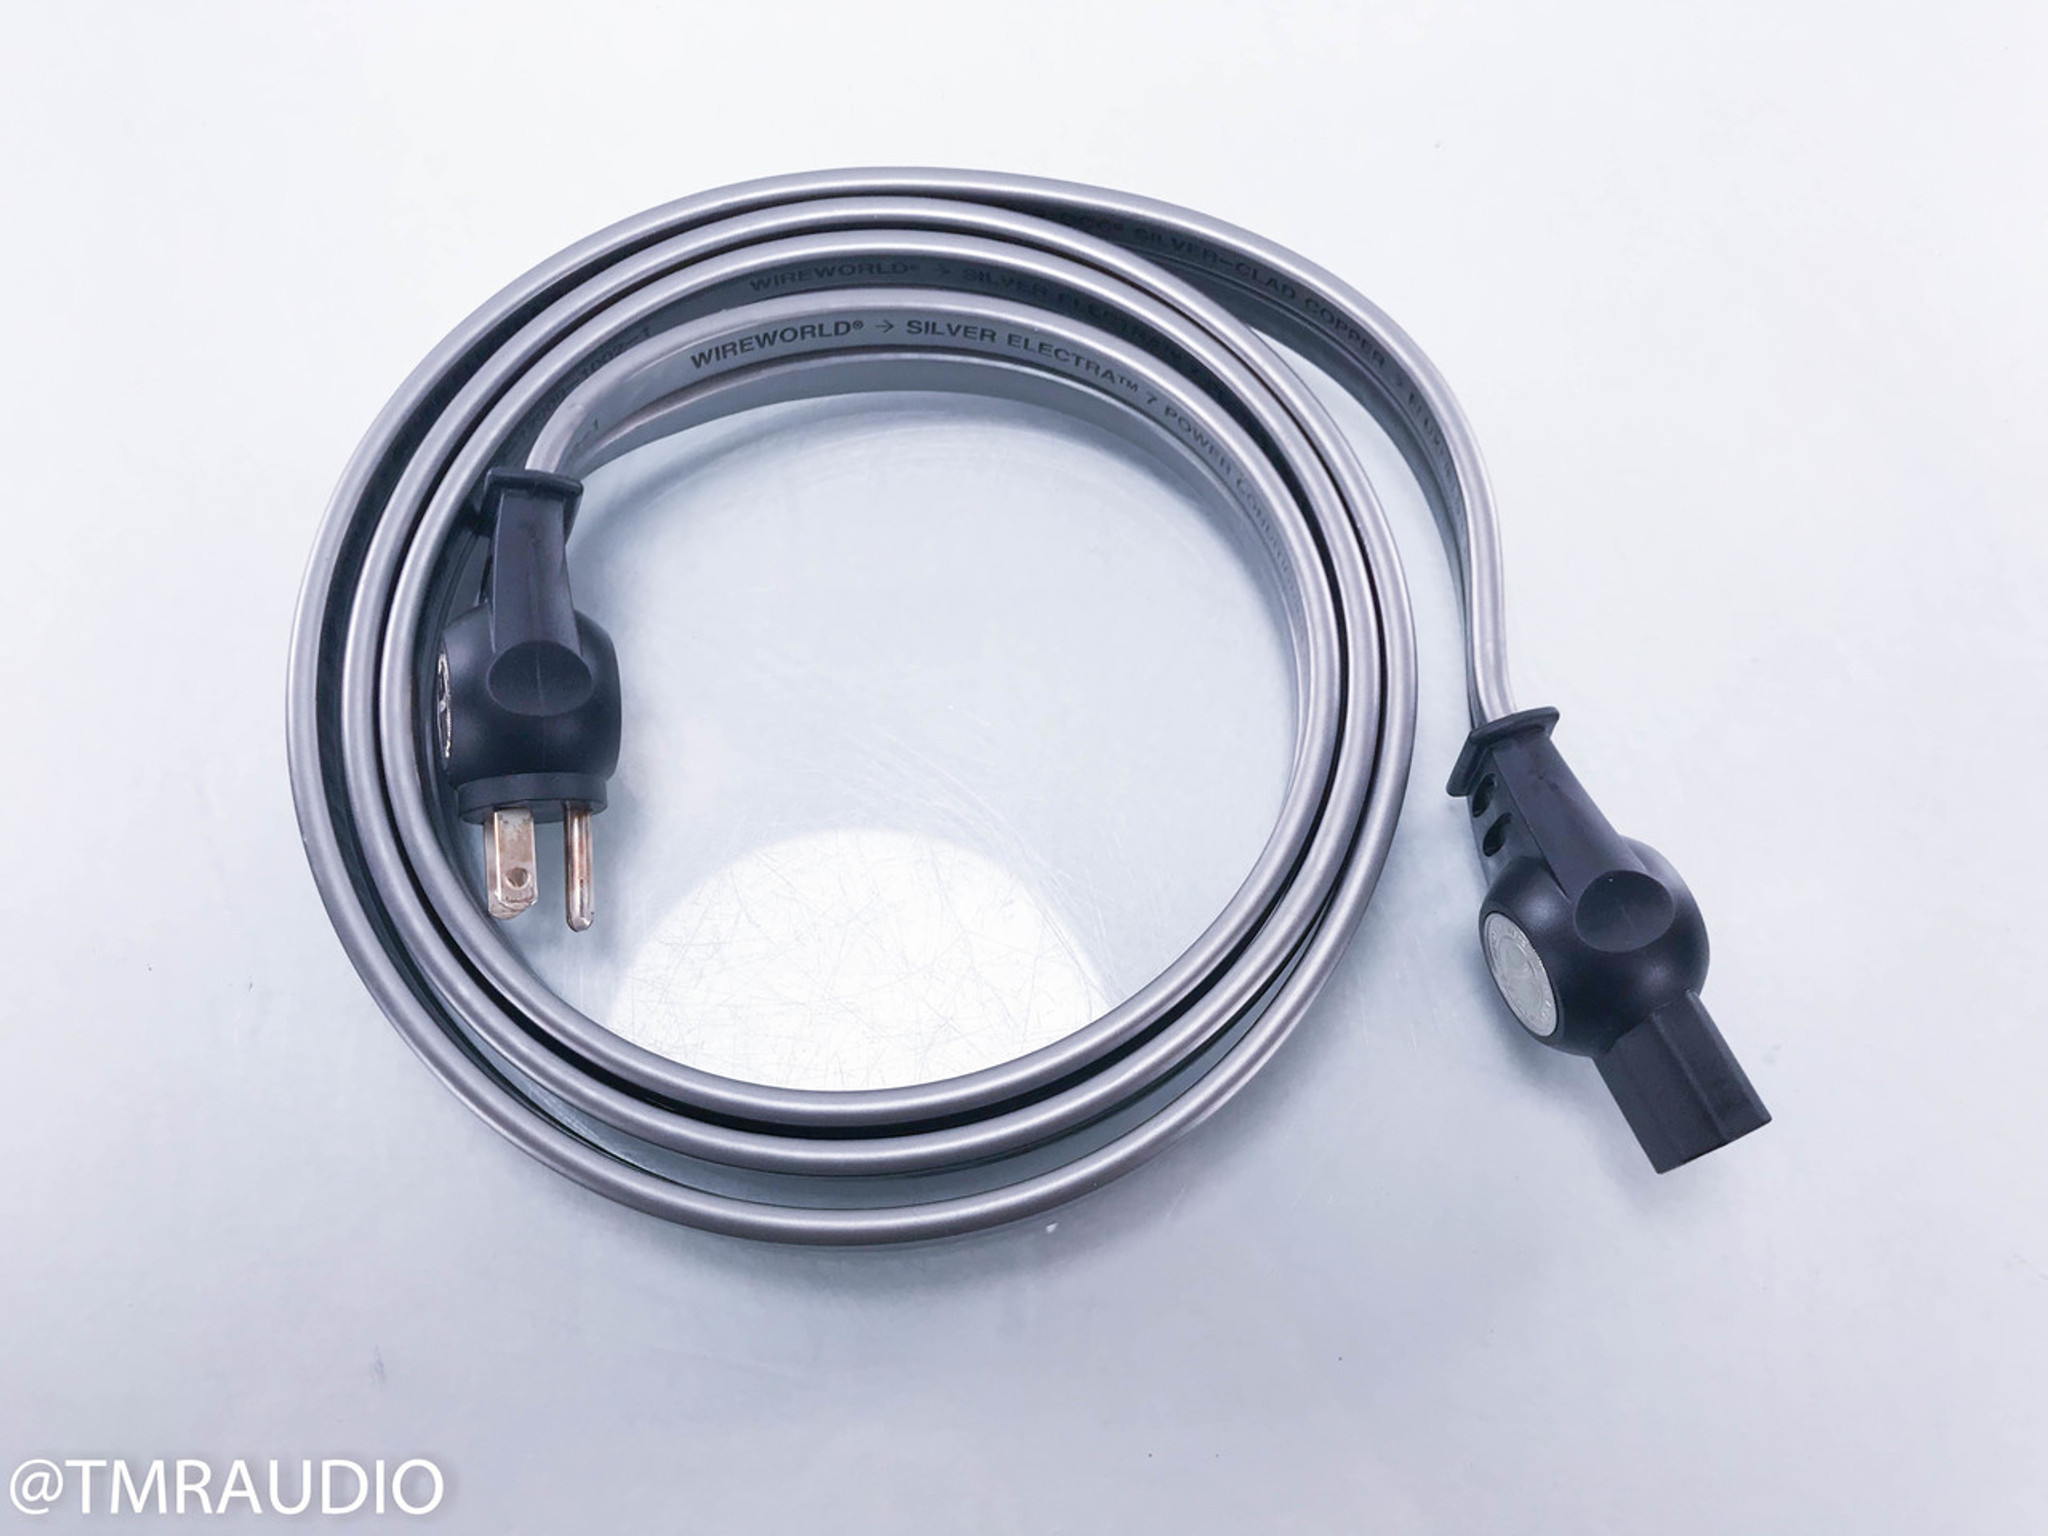 Wireworld Silver Electra 7 Power Cable; 2m AC Cord - The Music Room